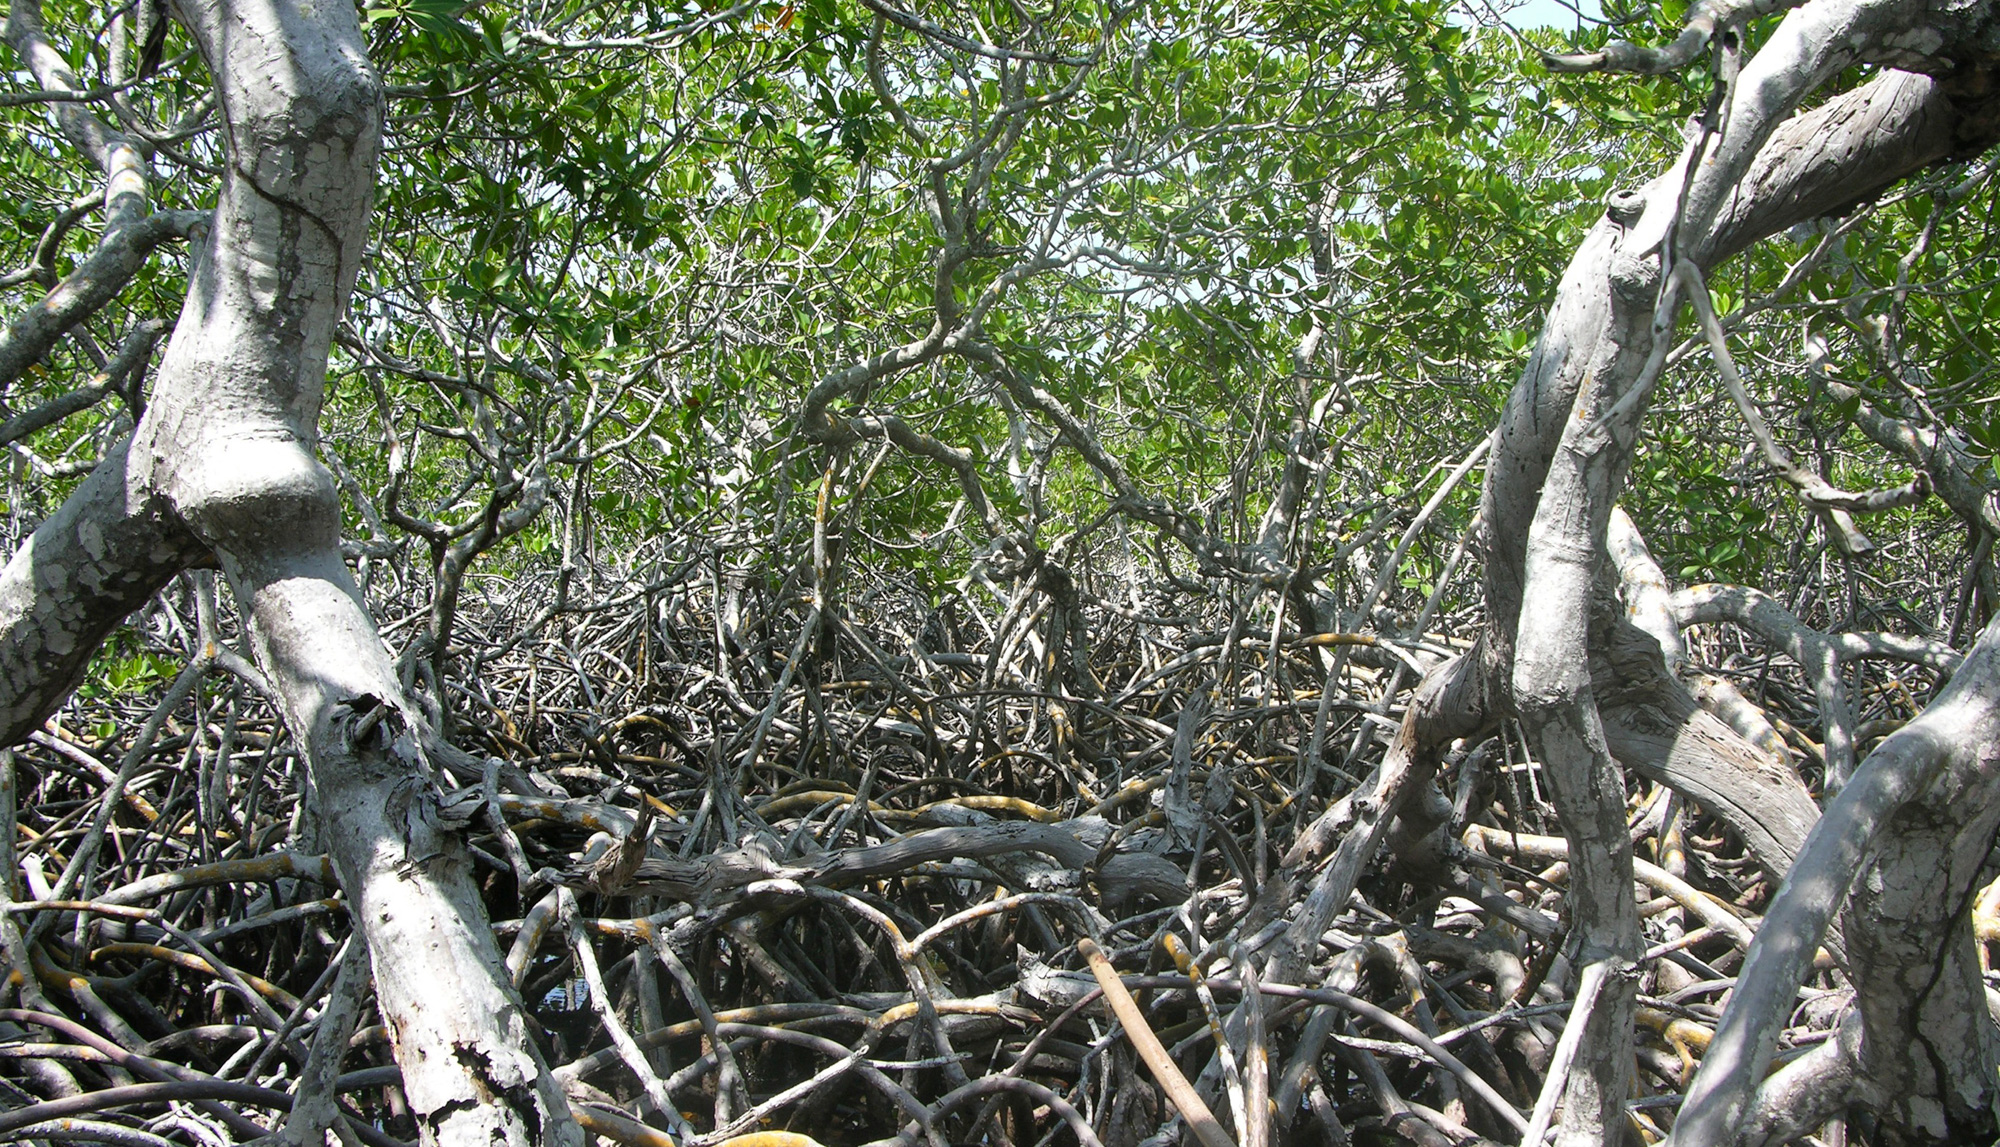 Mangrove roots create a strong but permeable barrier to waves and currents in Belize.<div class='credit'><strong>Credit:</strong> Mangrove roots create a strong but permeable barrier to waves and currents in Belize.</div>